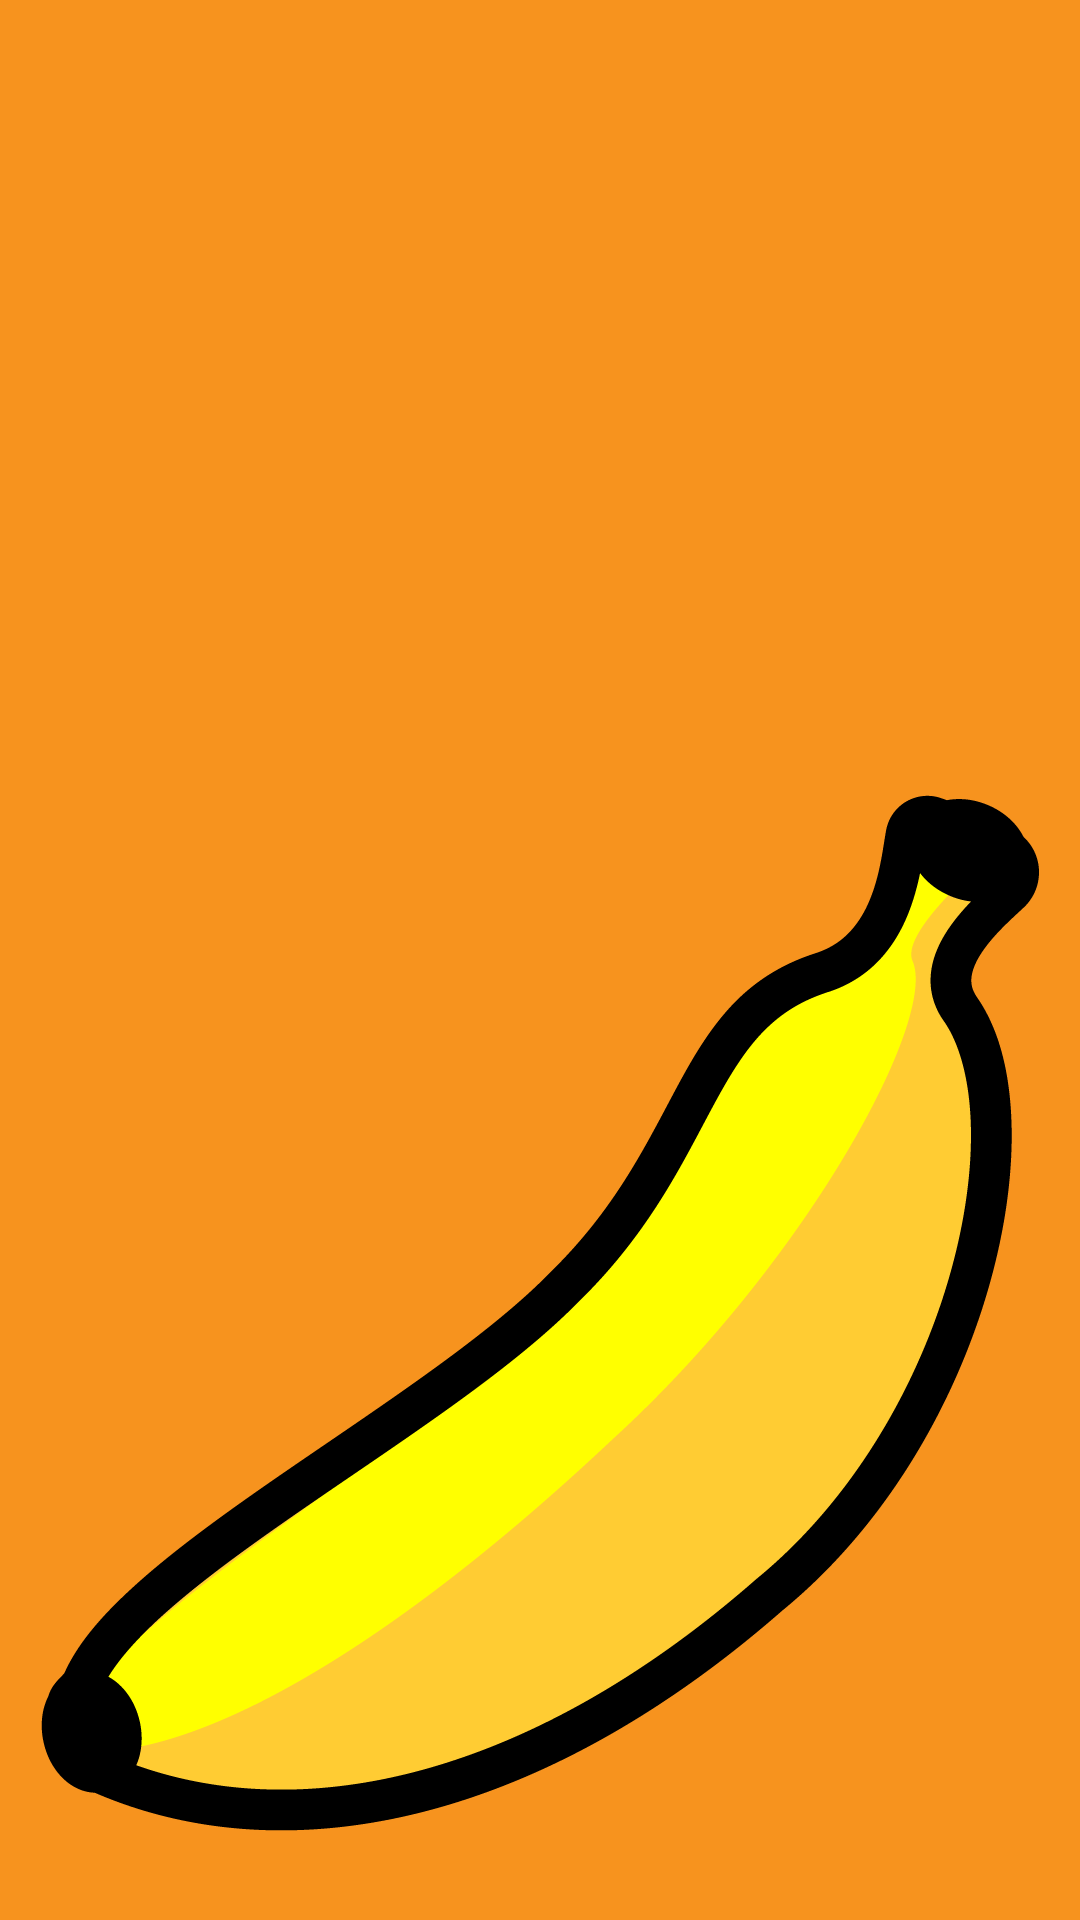 wallpaper1_banana-orange-iphone